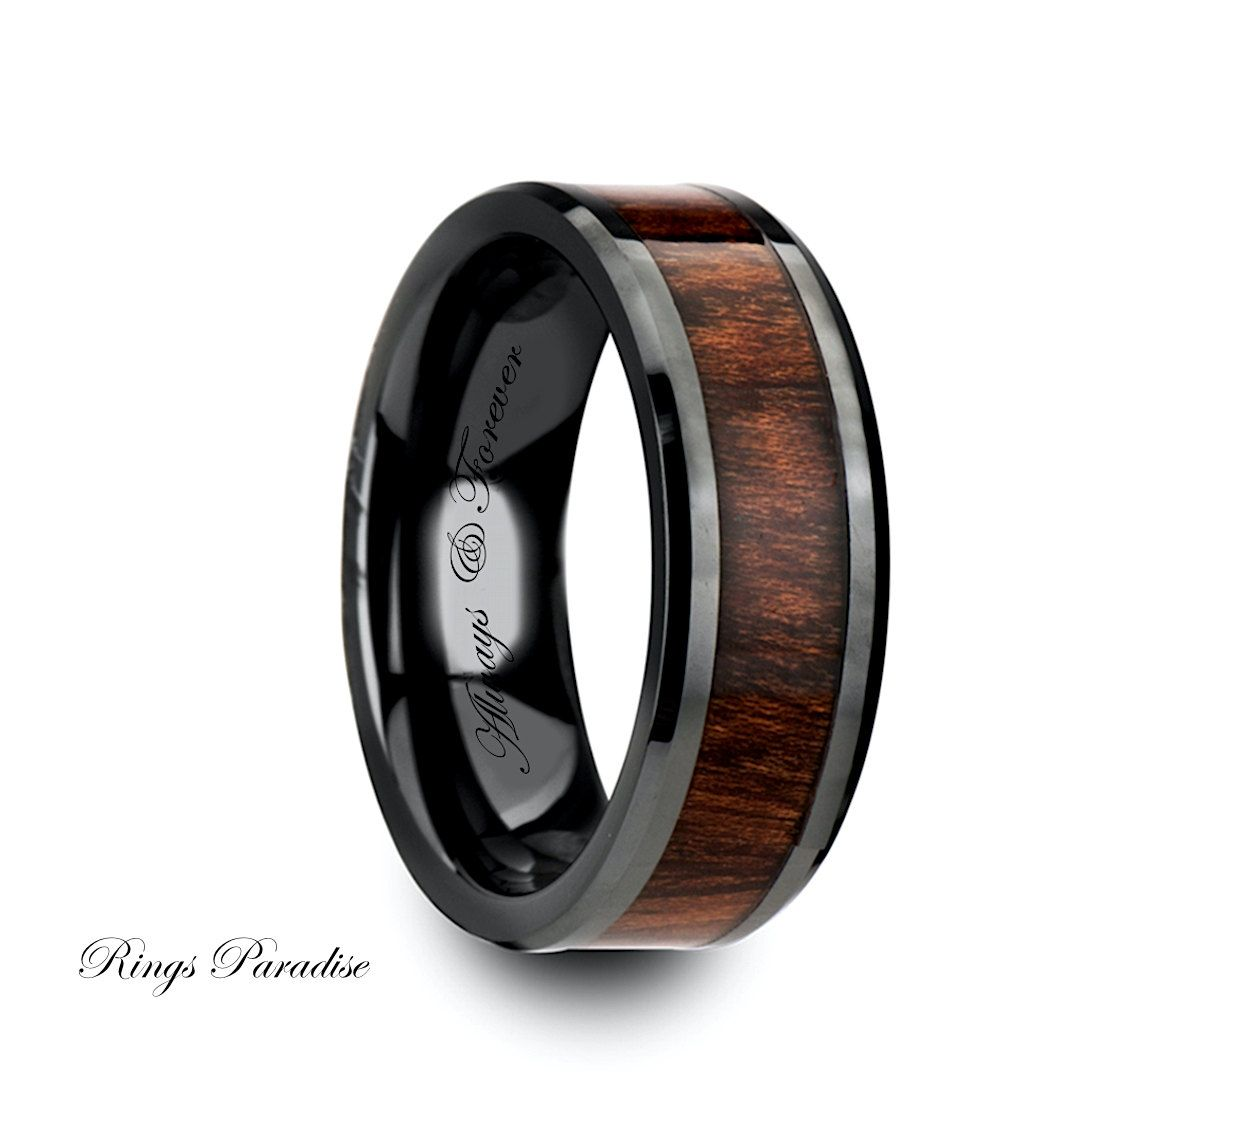 mens ceramic wedding bands www ringsparadise com Wedding Bands Band Wood Inlaid Ring Black